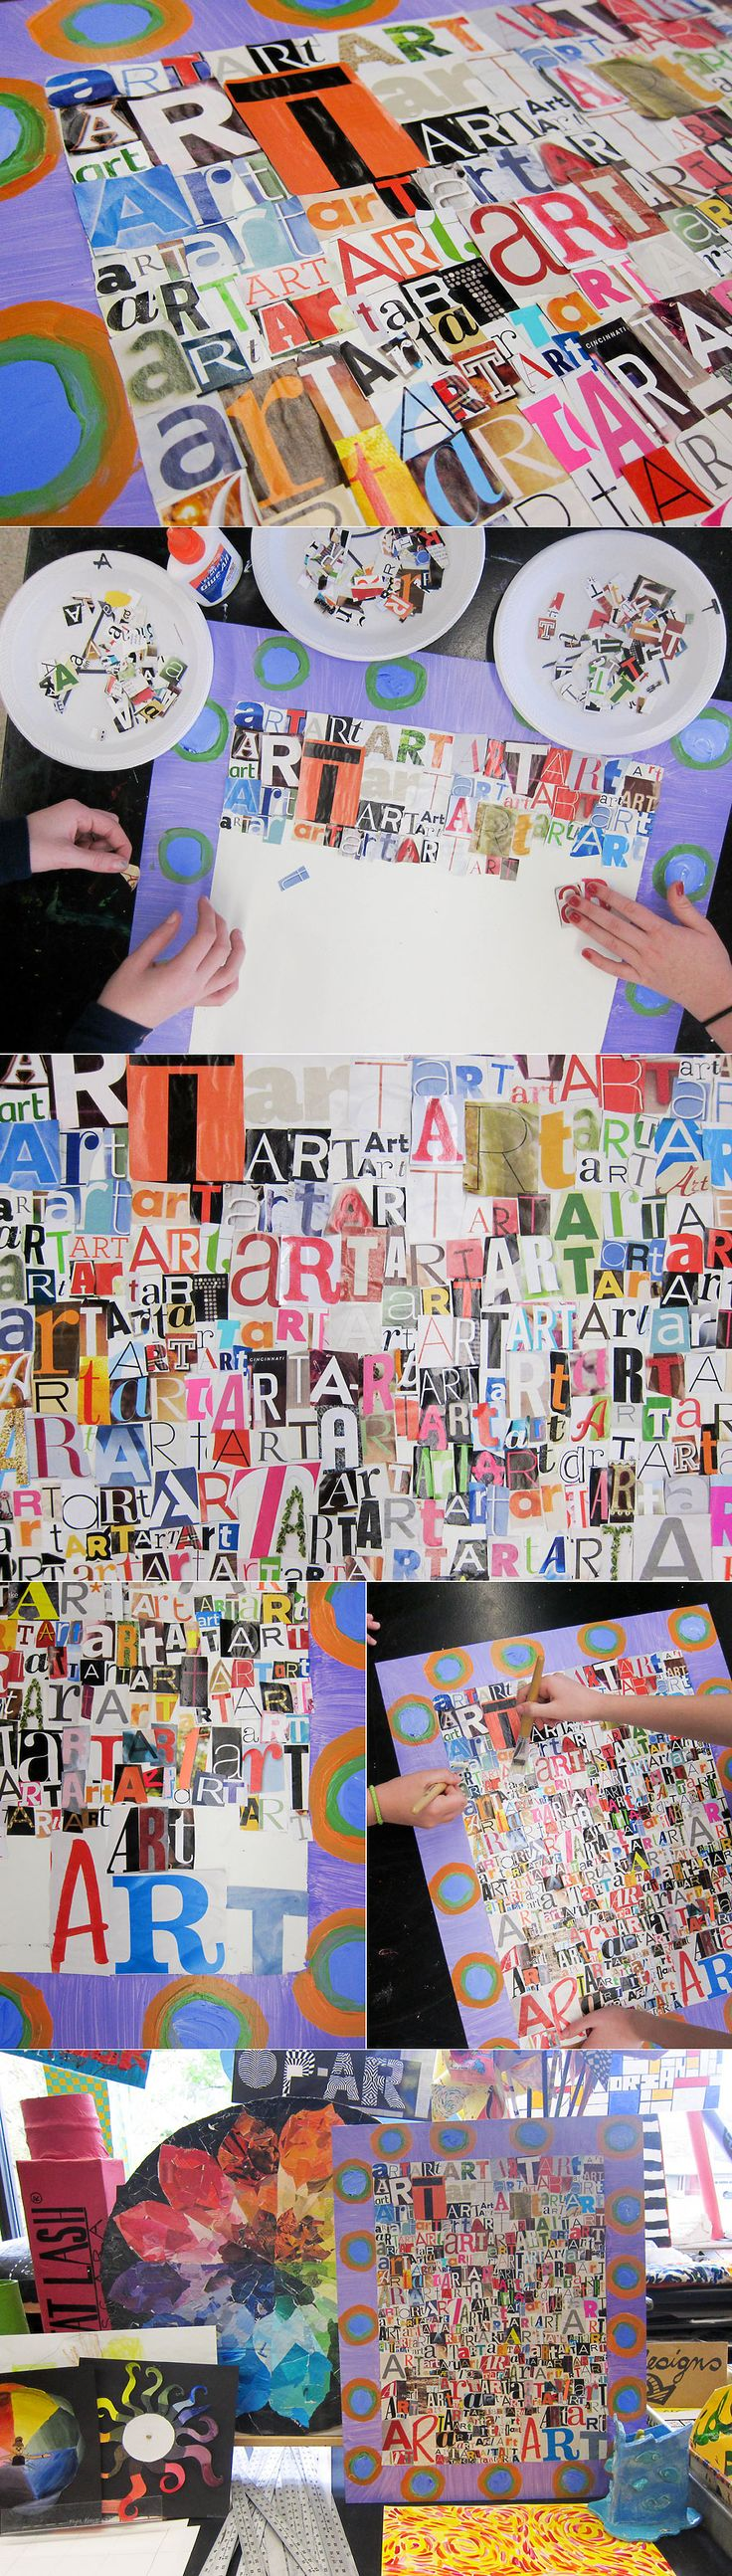 free time activity...have students who finish early hunt through magazines for the letters A-R-T.  Collaborative art for the classroom.  Great Idea Frecklephotoblog!